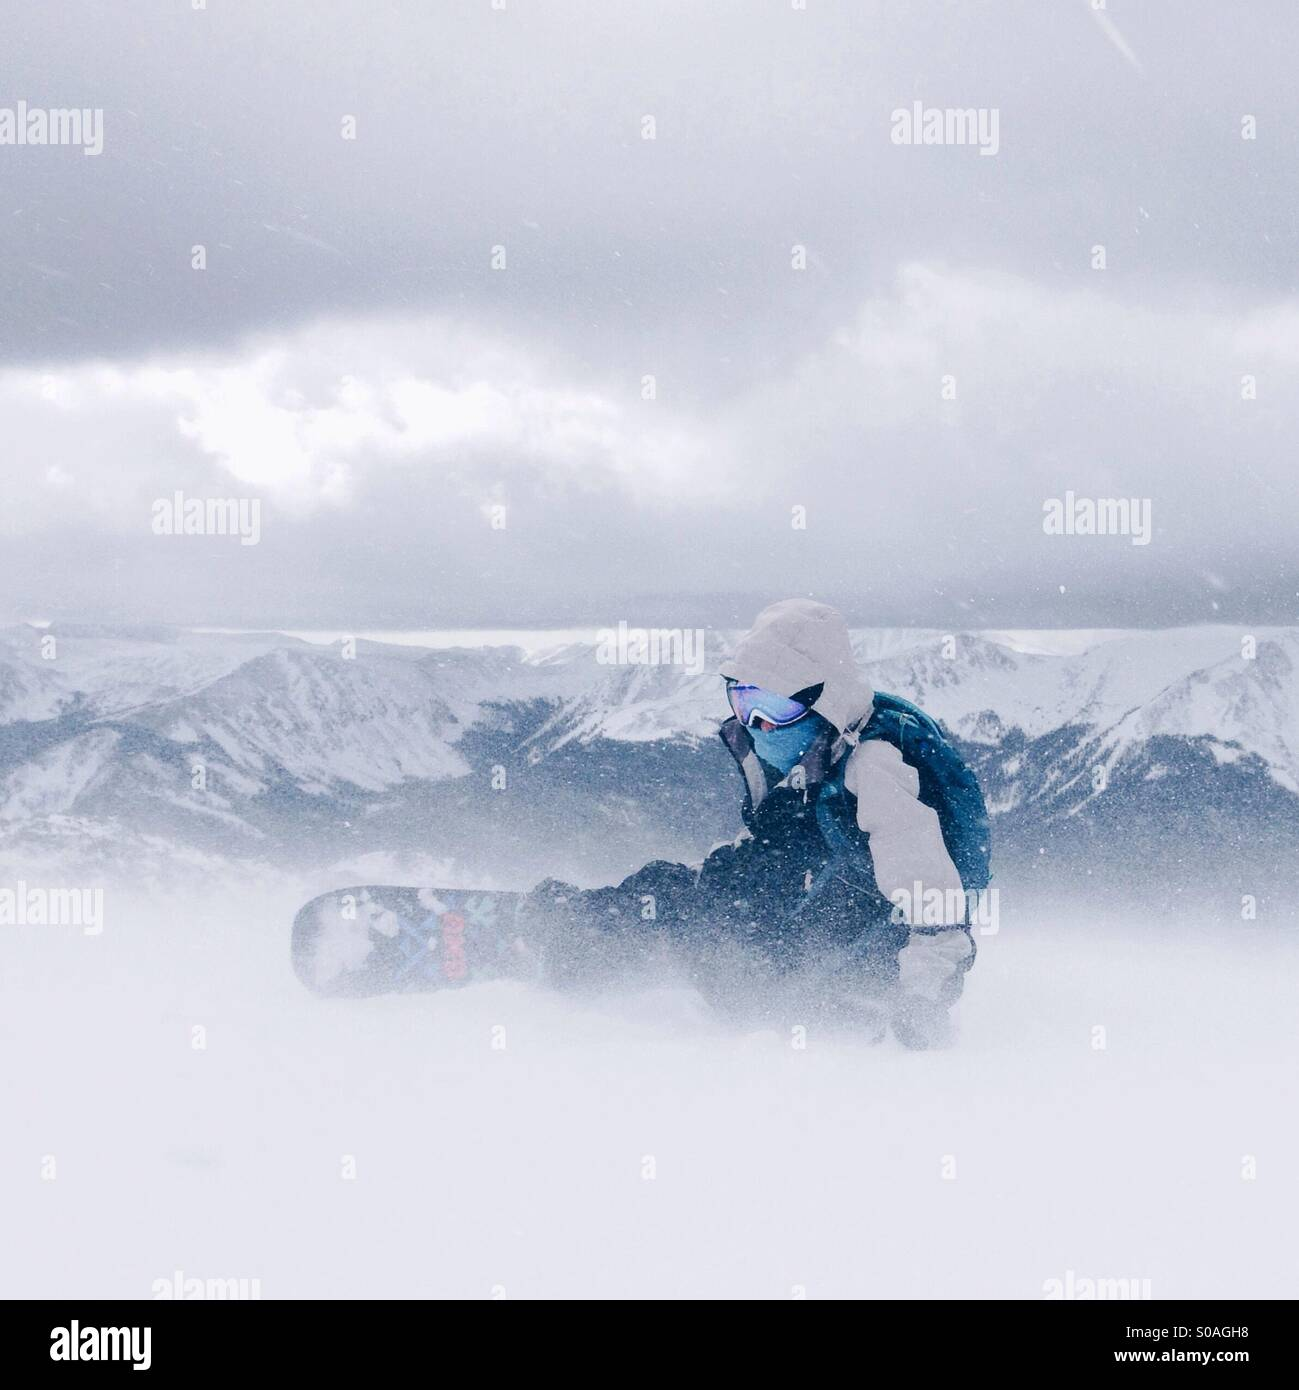 Windy mountain snowboarder - Stock Image